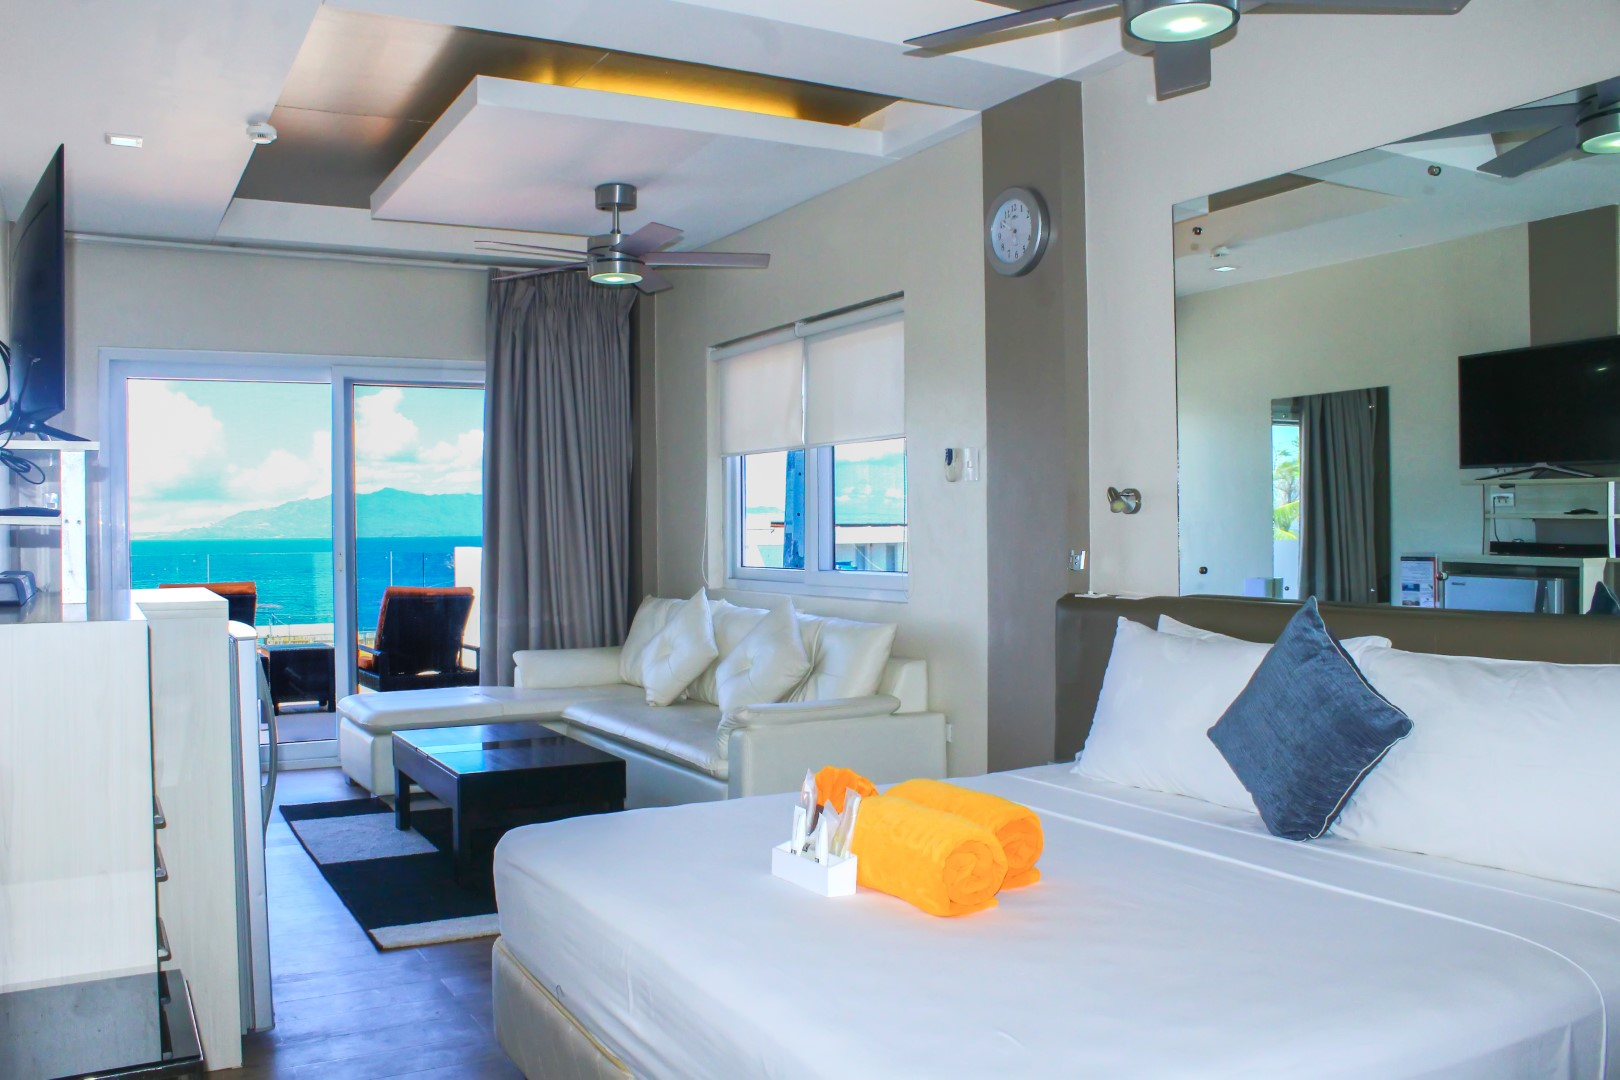 Villa Room at Lalaguna Villas & LLV Divers 1